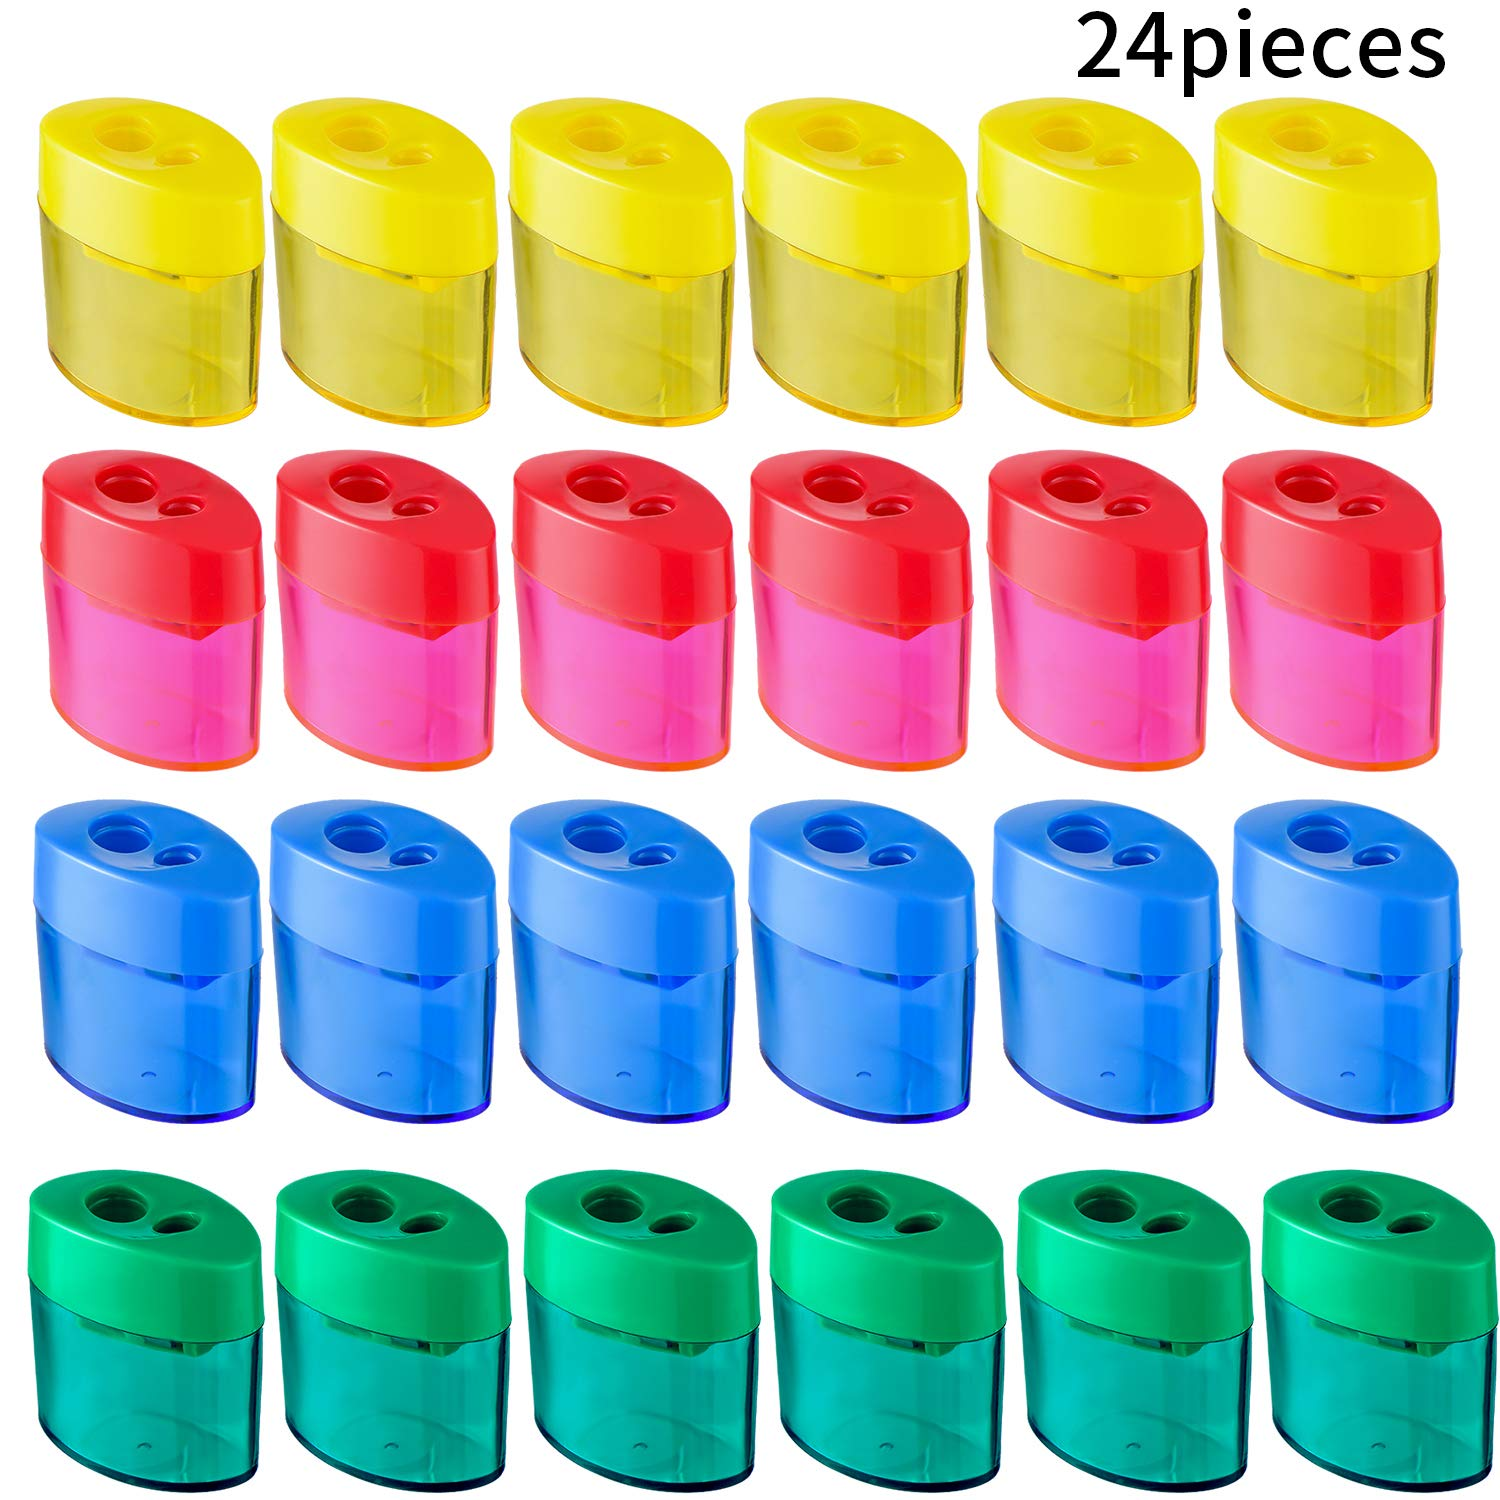 Double Hole Oval Shaped Pencil Sharpener with Cover and Receptacle Manual Pencil Sharpener Hand Pencil Sharpener for Office Home Supply (24 Pieces)